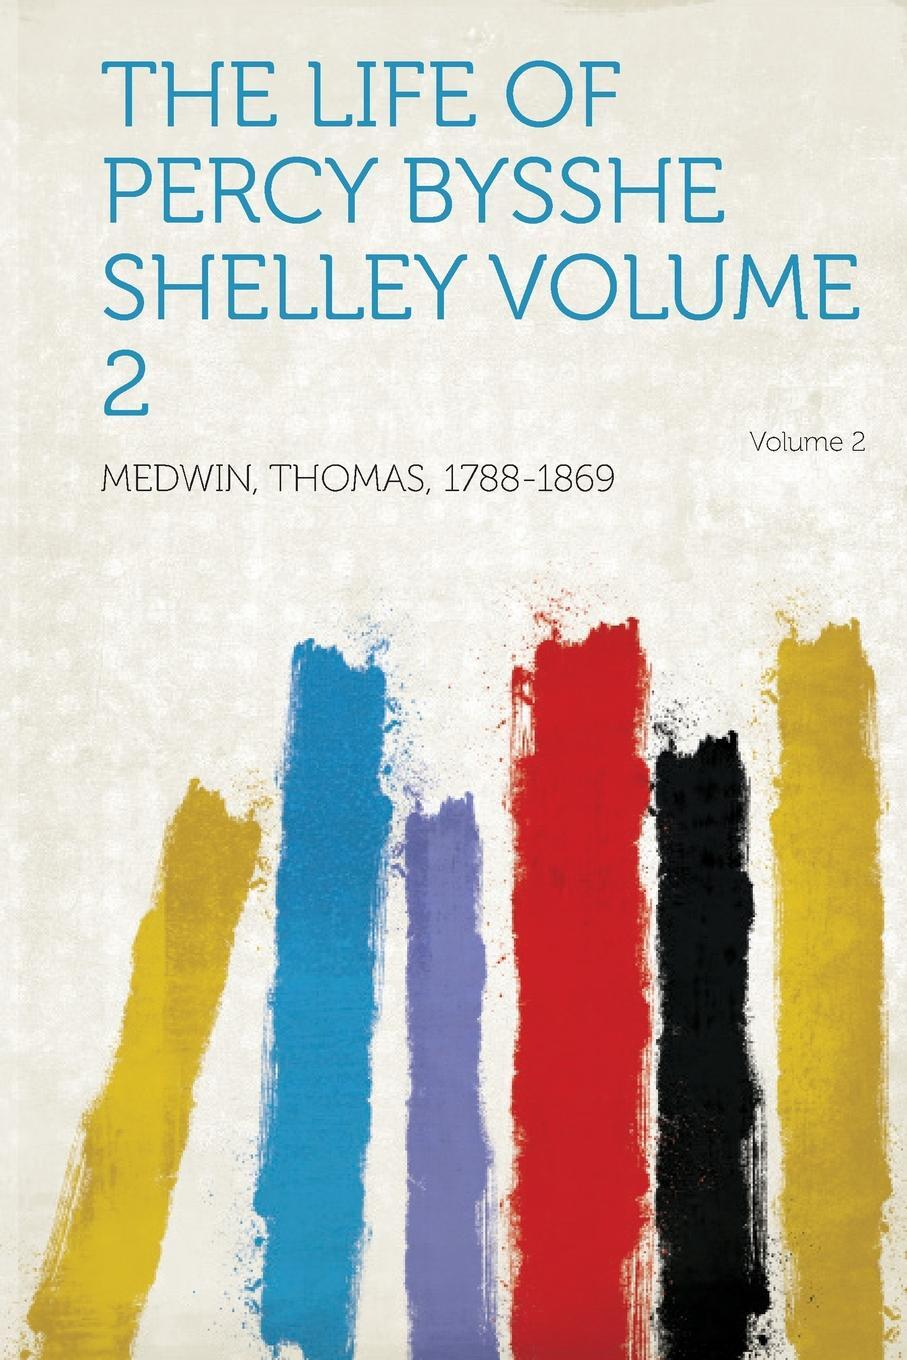 Medwin Thomas 1788-1869. The Life of Percy Bysshe Shelley Volume 2